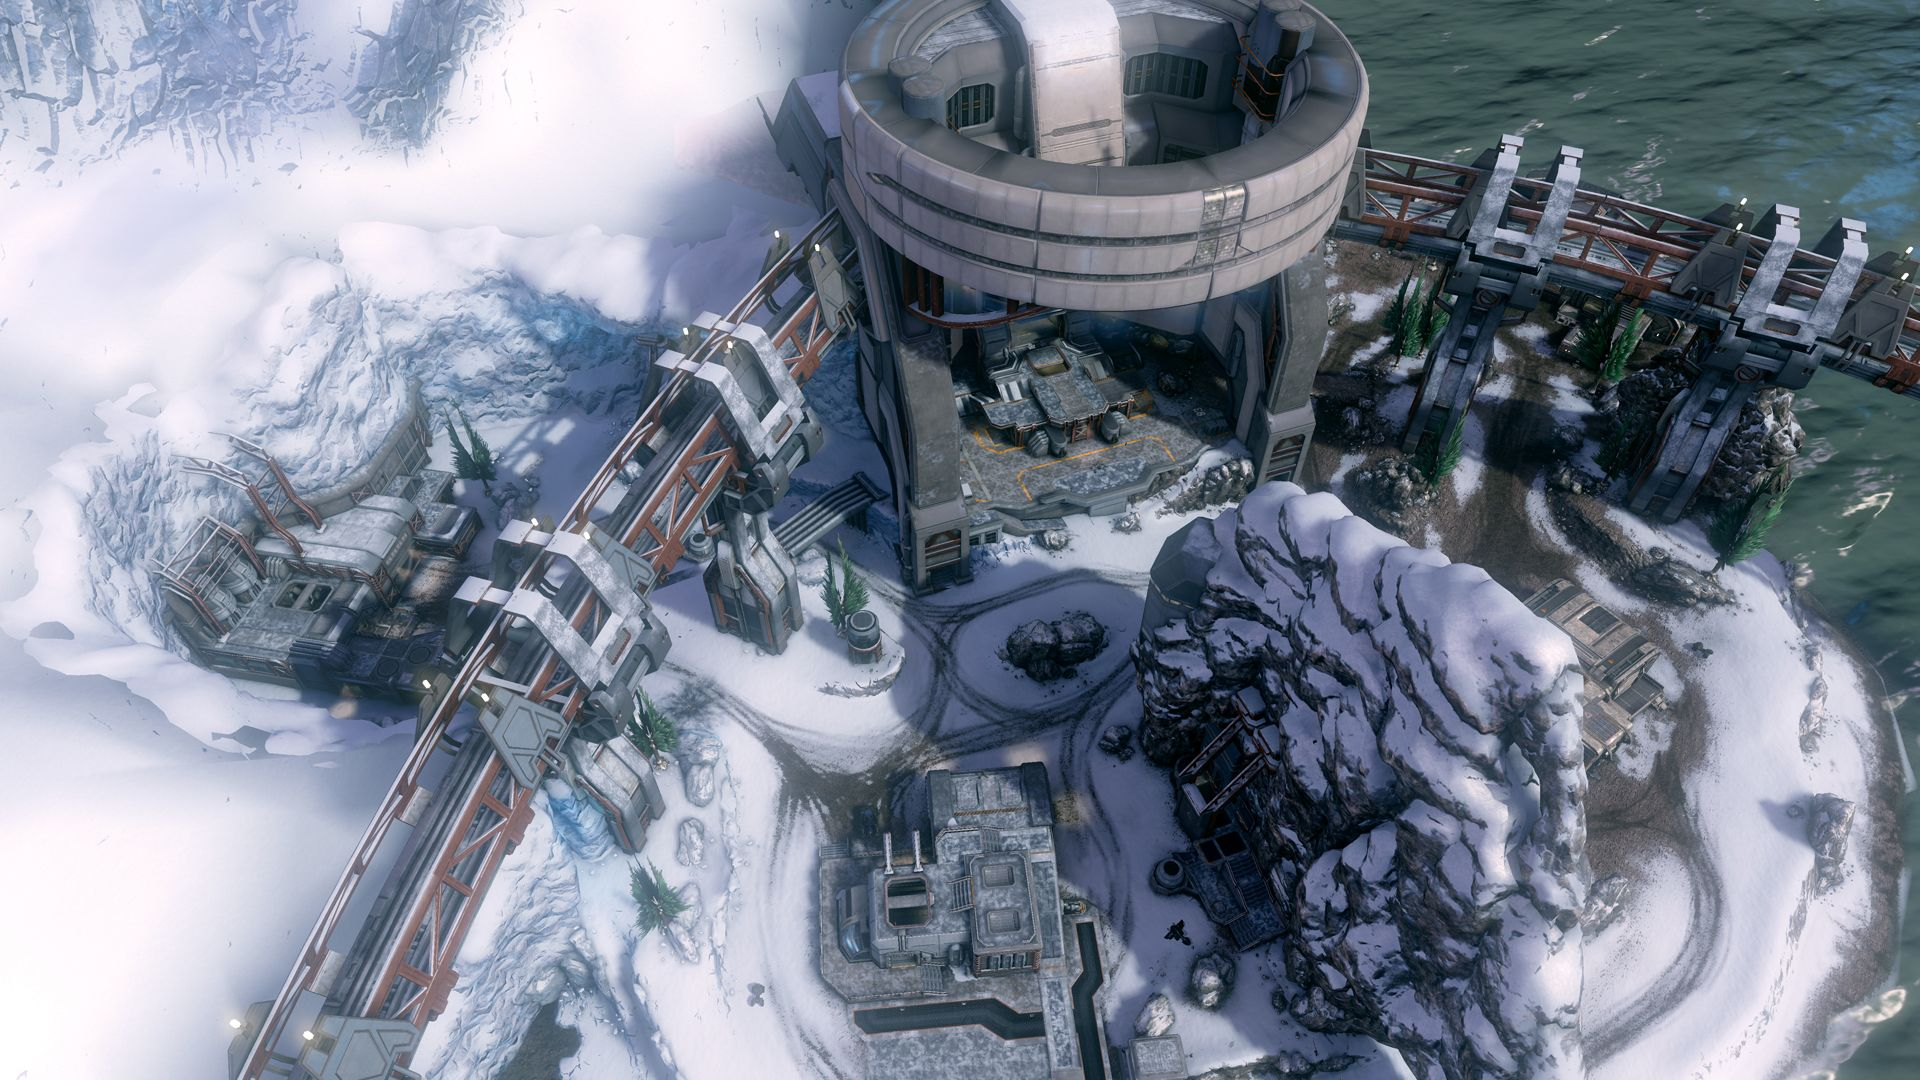 halo maps - Google Search | New halo, Halo, Video game ...